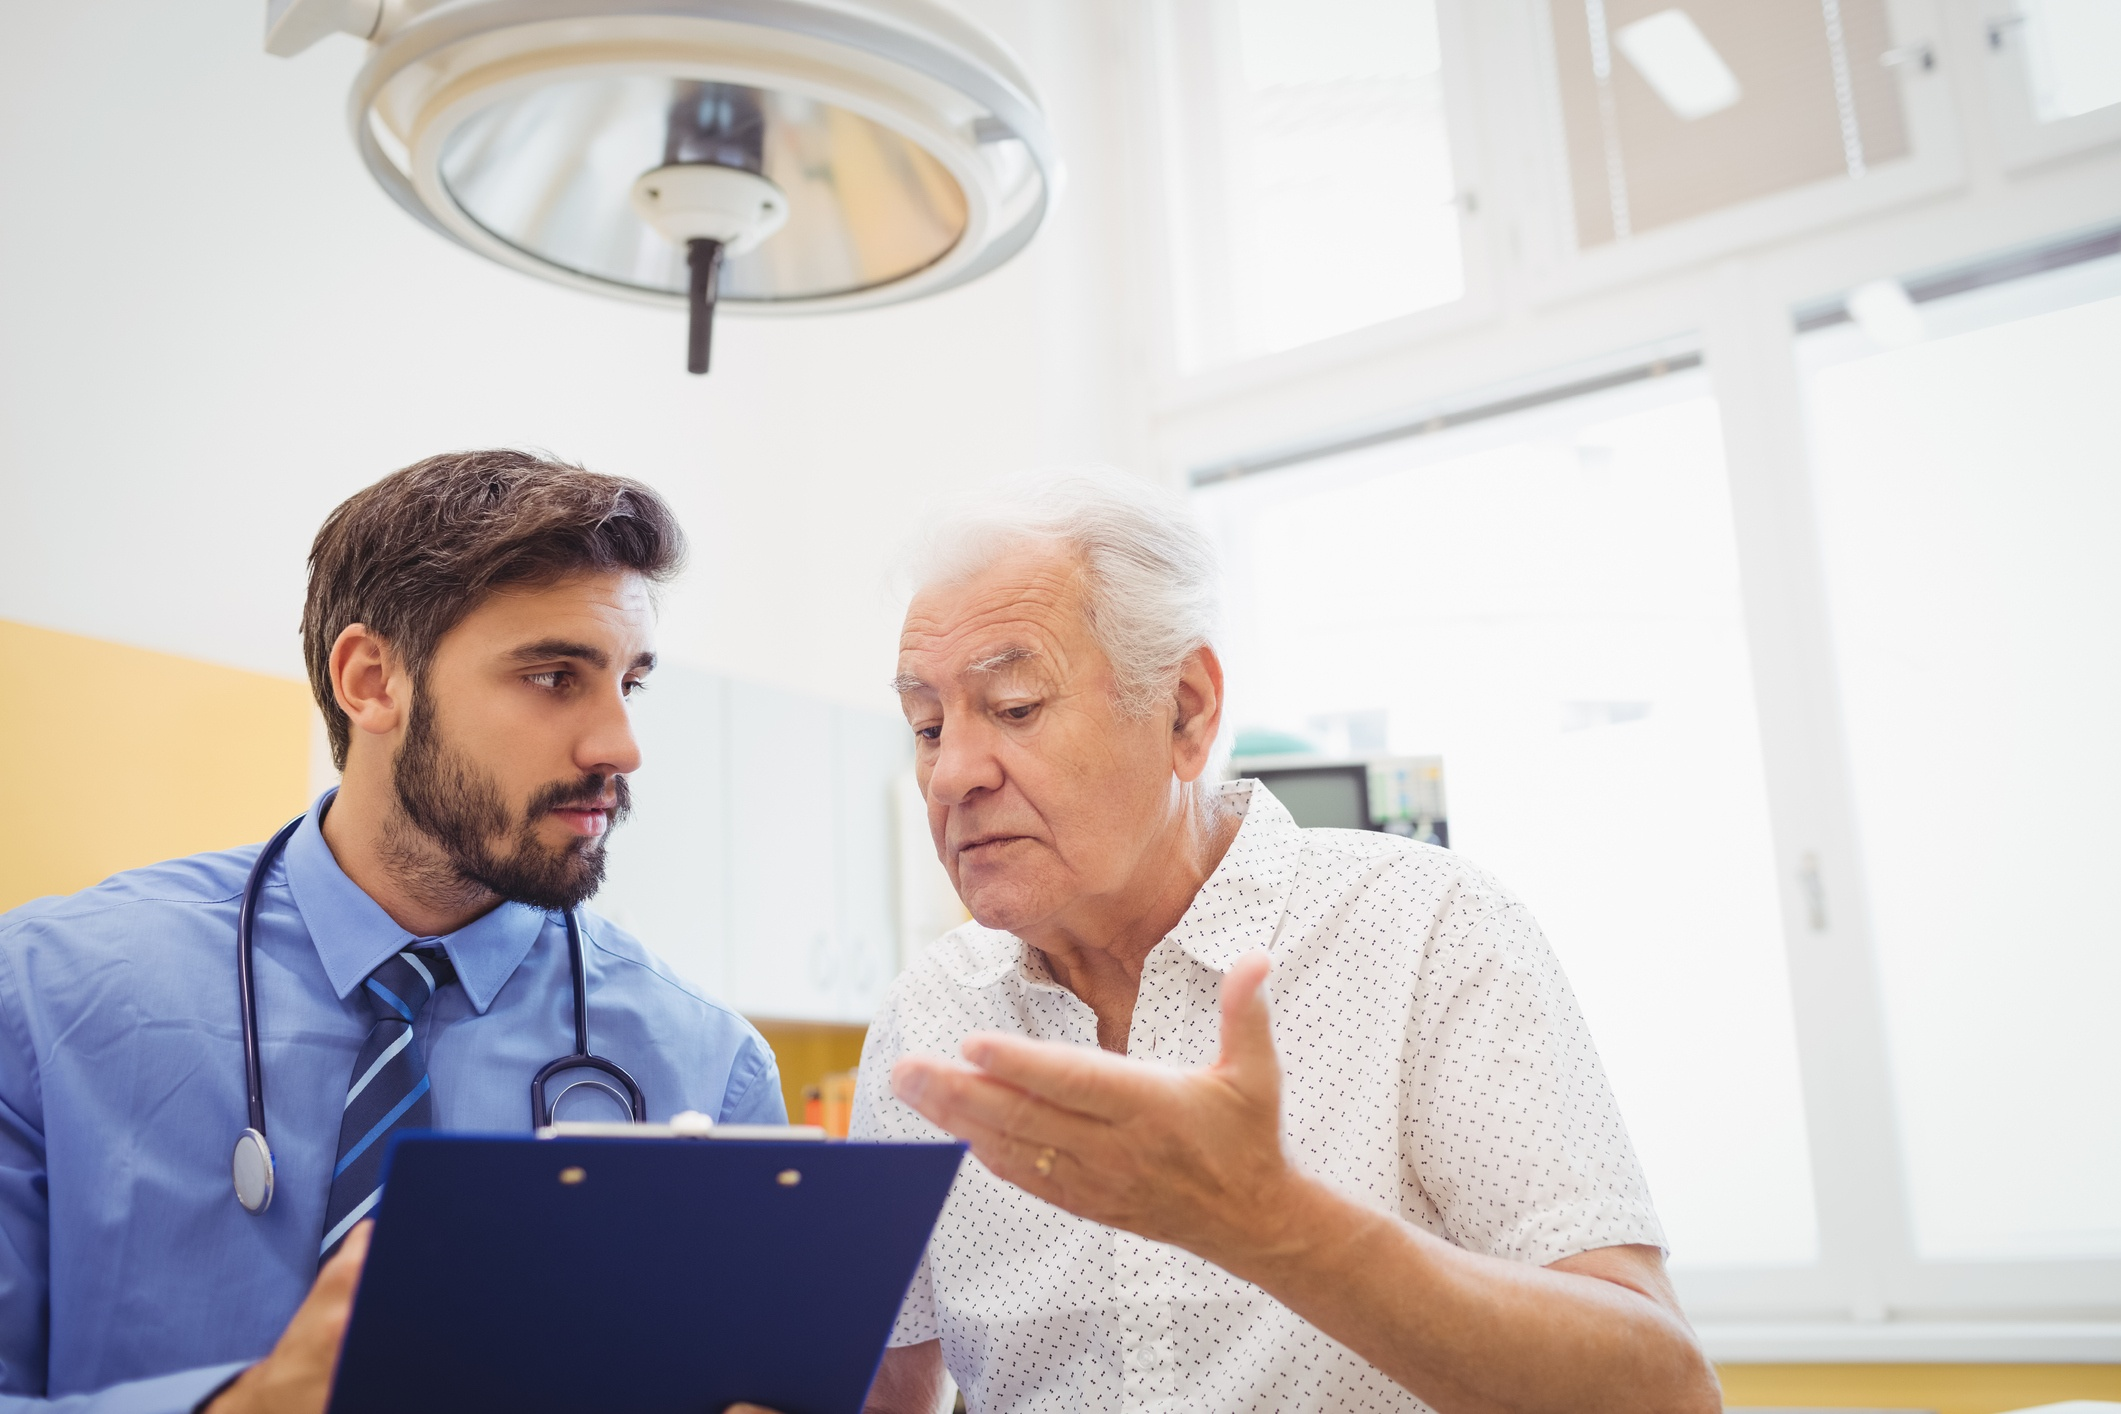 Airway Obstruction in The Elderly What You Need to Know